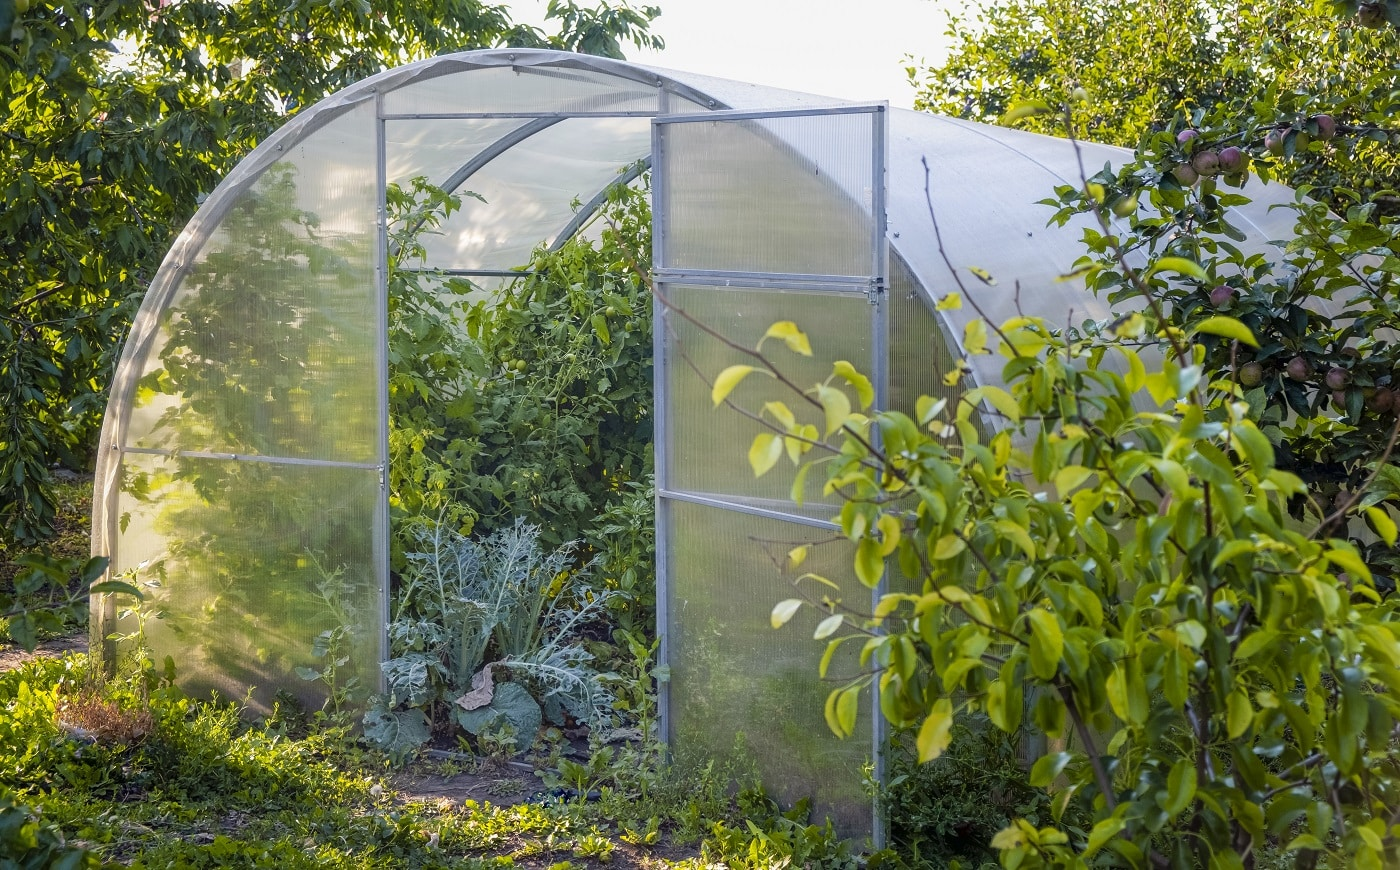 Greenhouse. Organic food. Open greenhouse with tomatoes in the middle of the vegetable garden